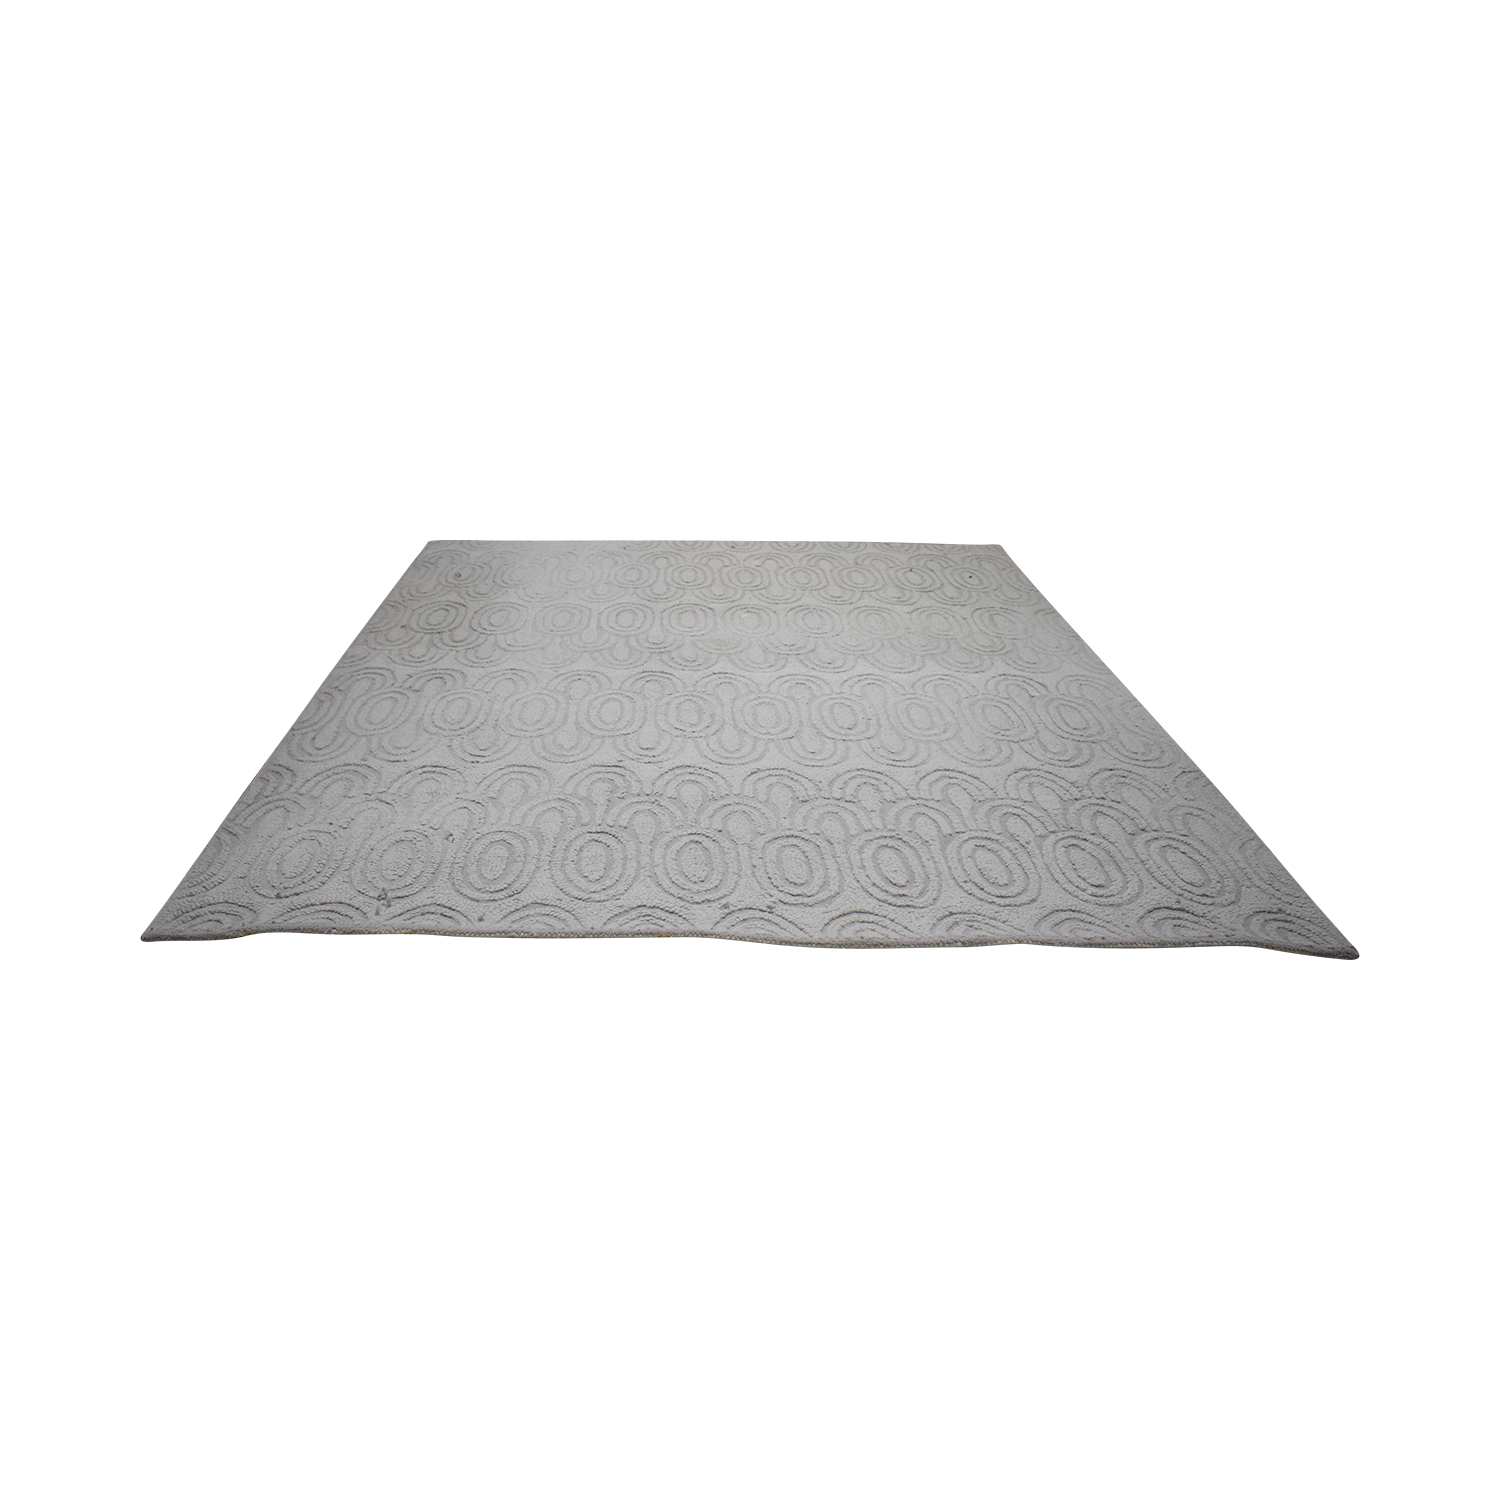 West Elm West Elm Grey Wool Rug used